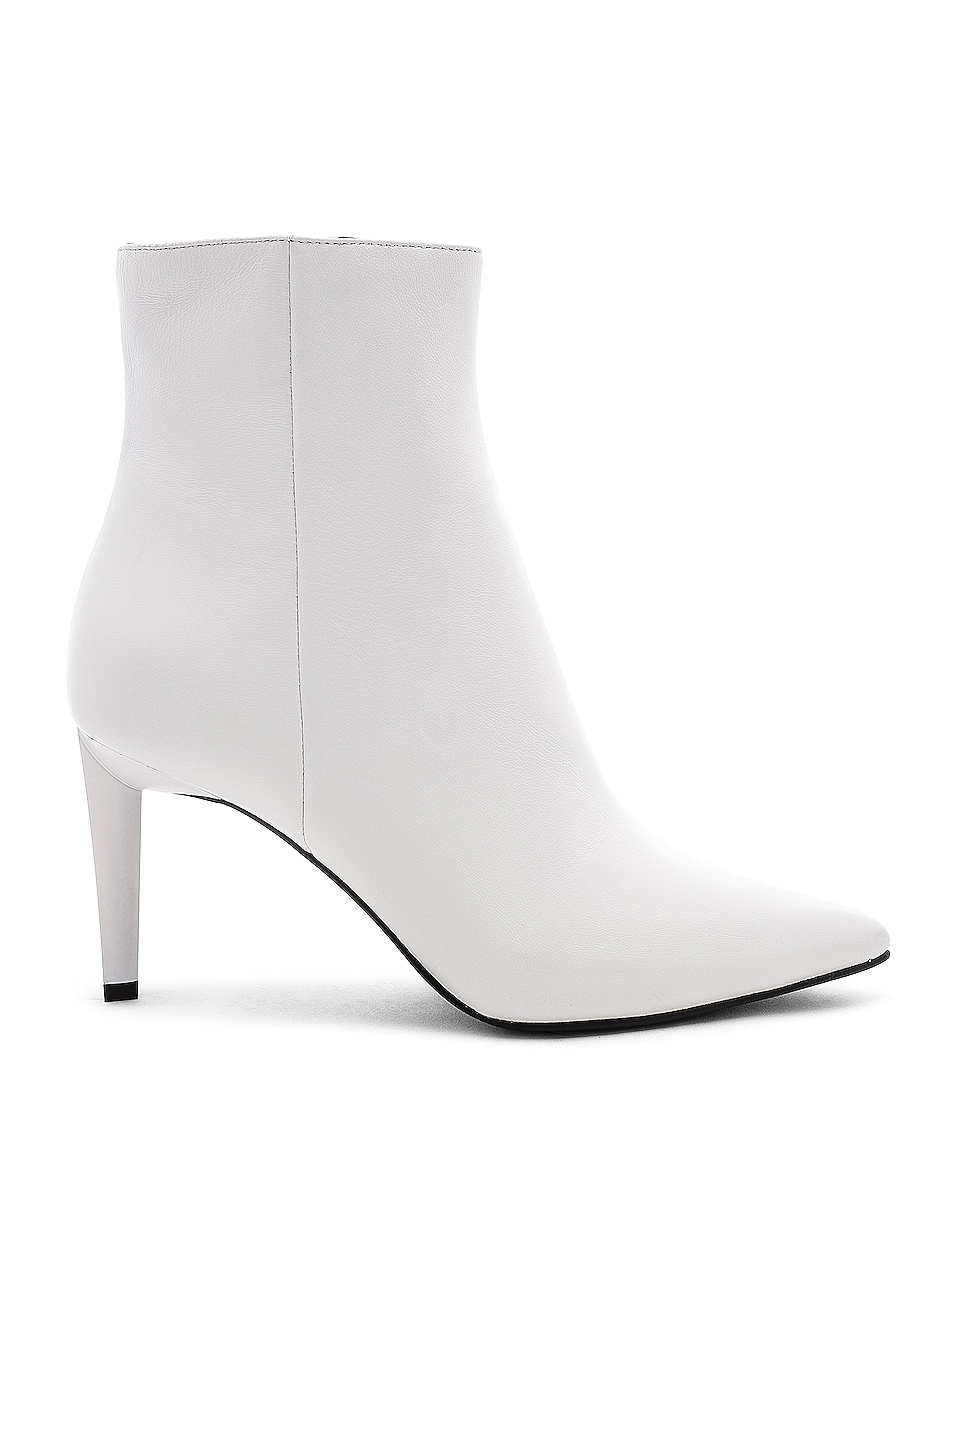 KENDALL + KYLIE Zoe Boot in White Sheep Leather